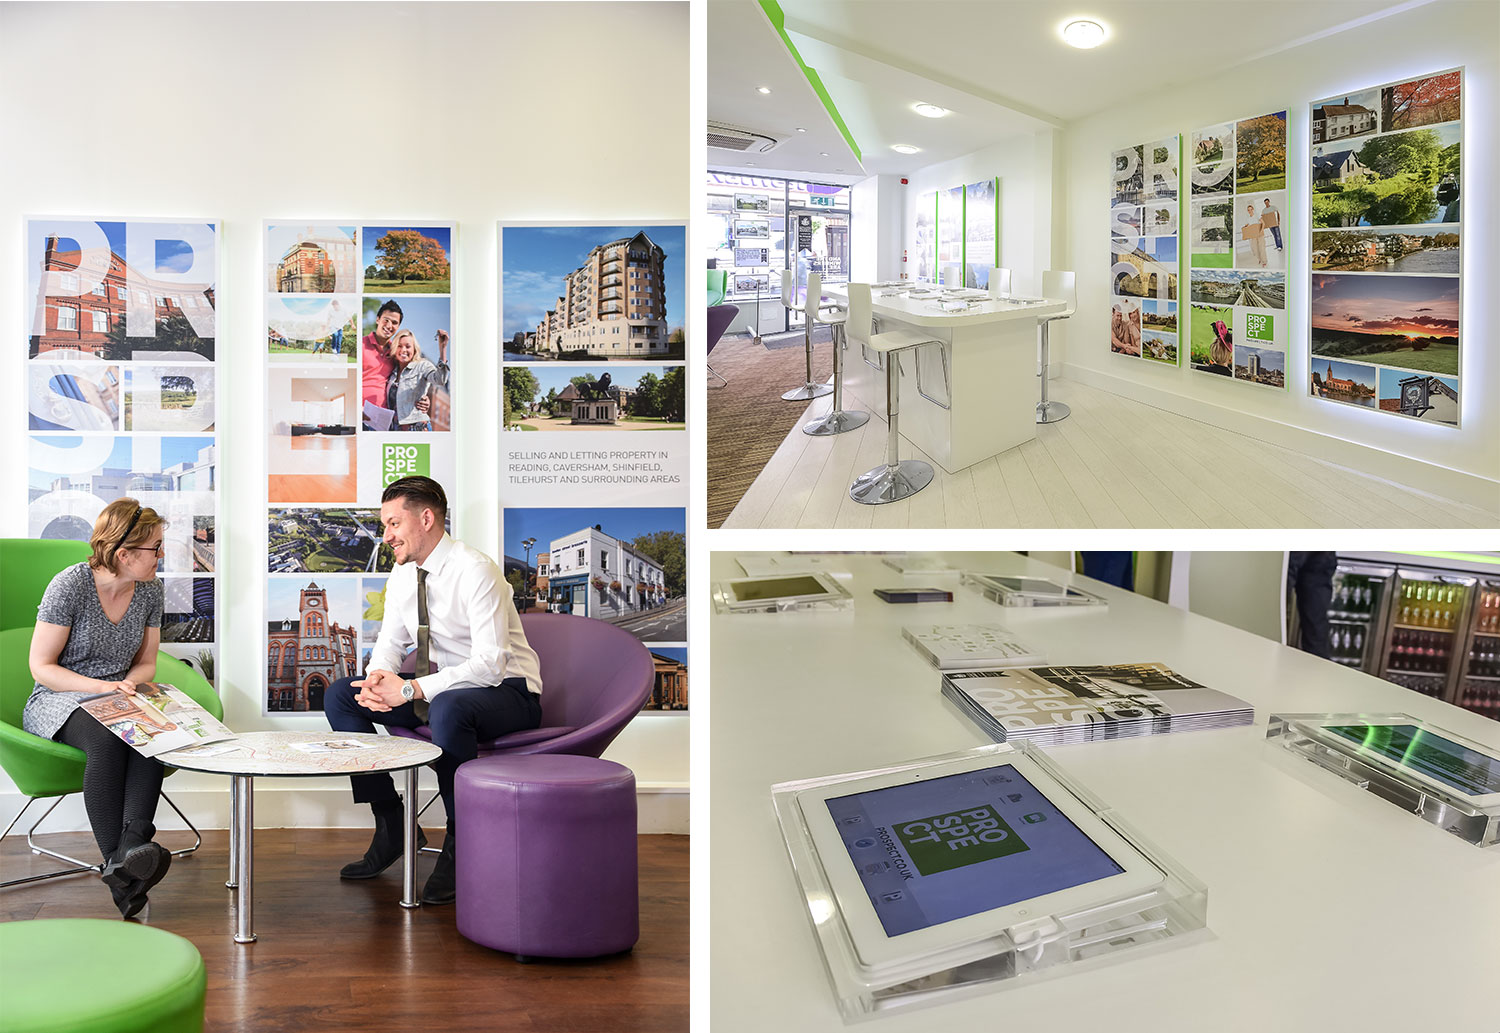 Some images to show how the branding works inside the offices